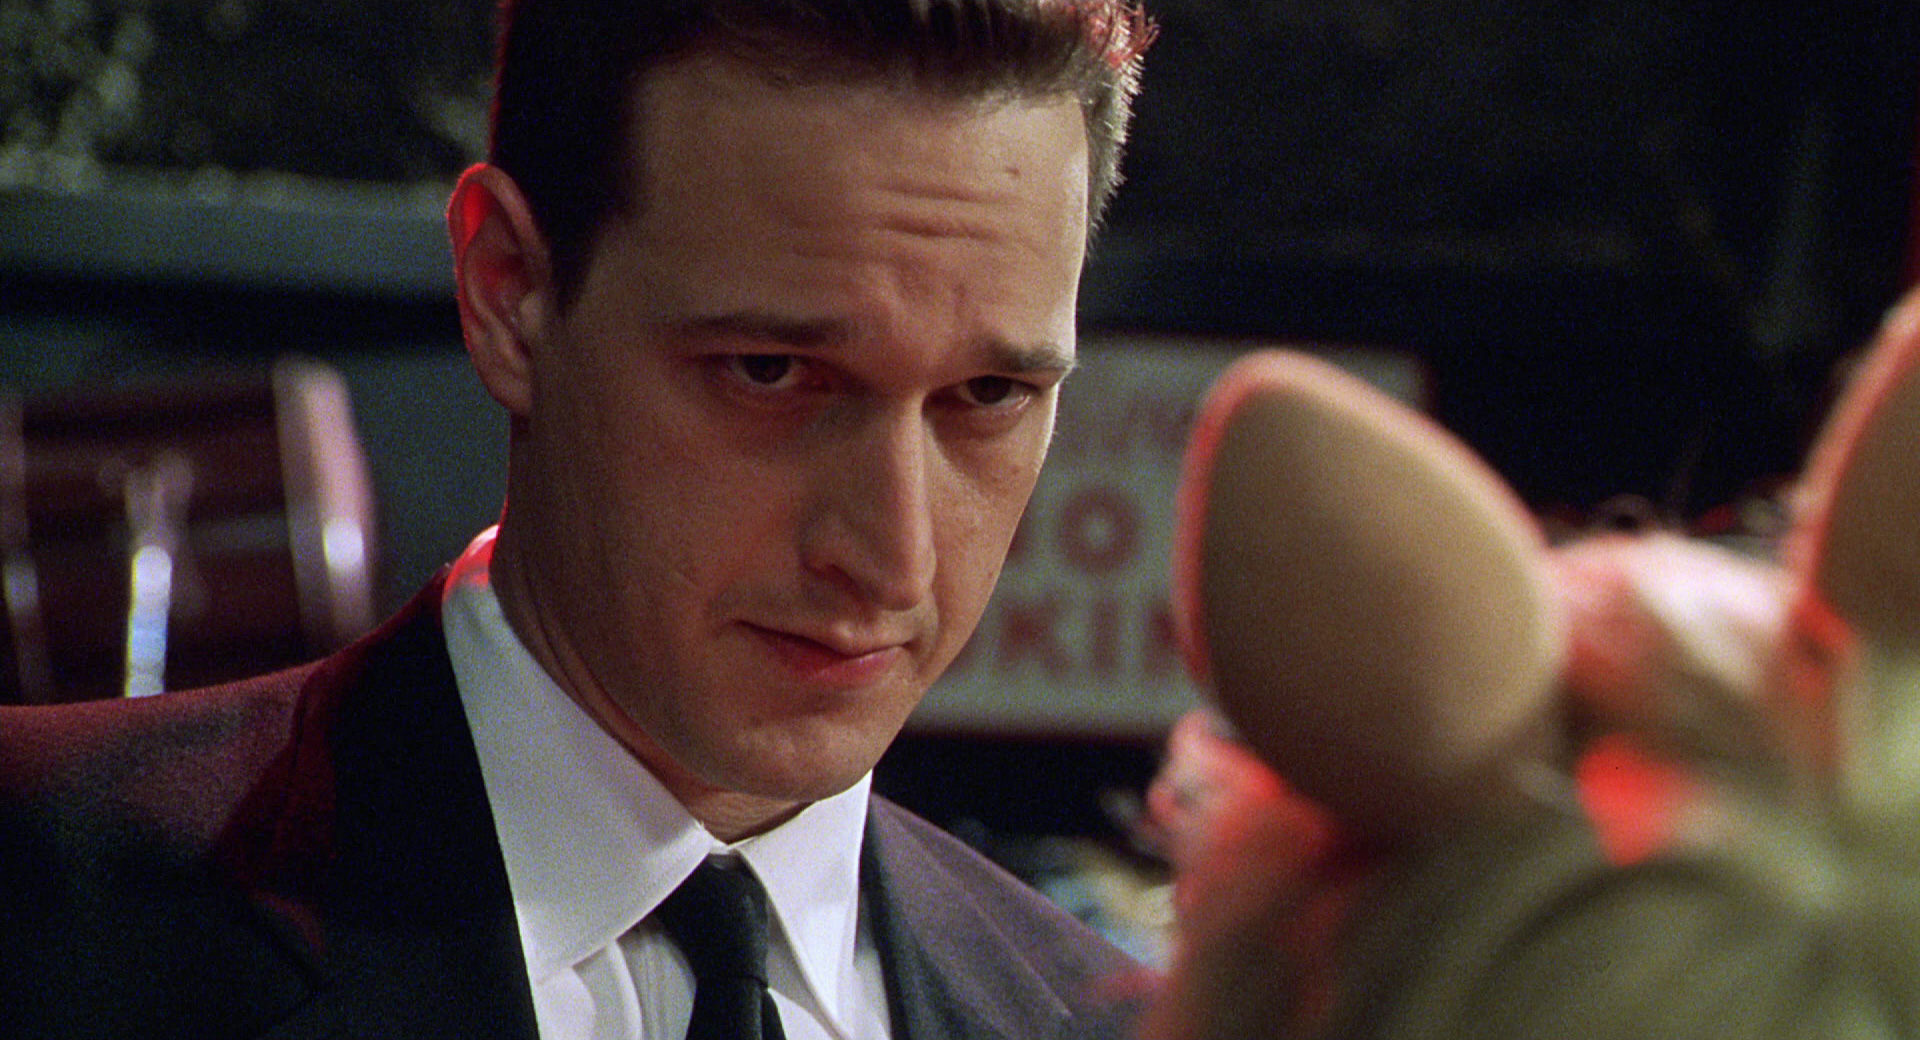 File:Joshcharles.jpg